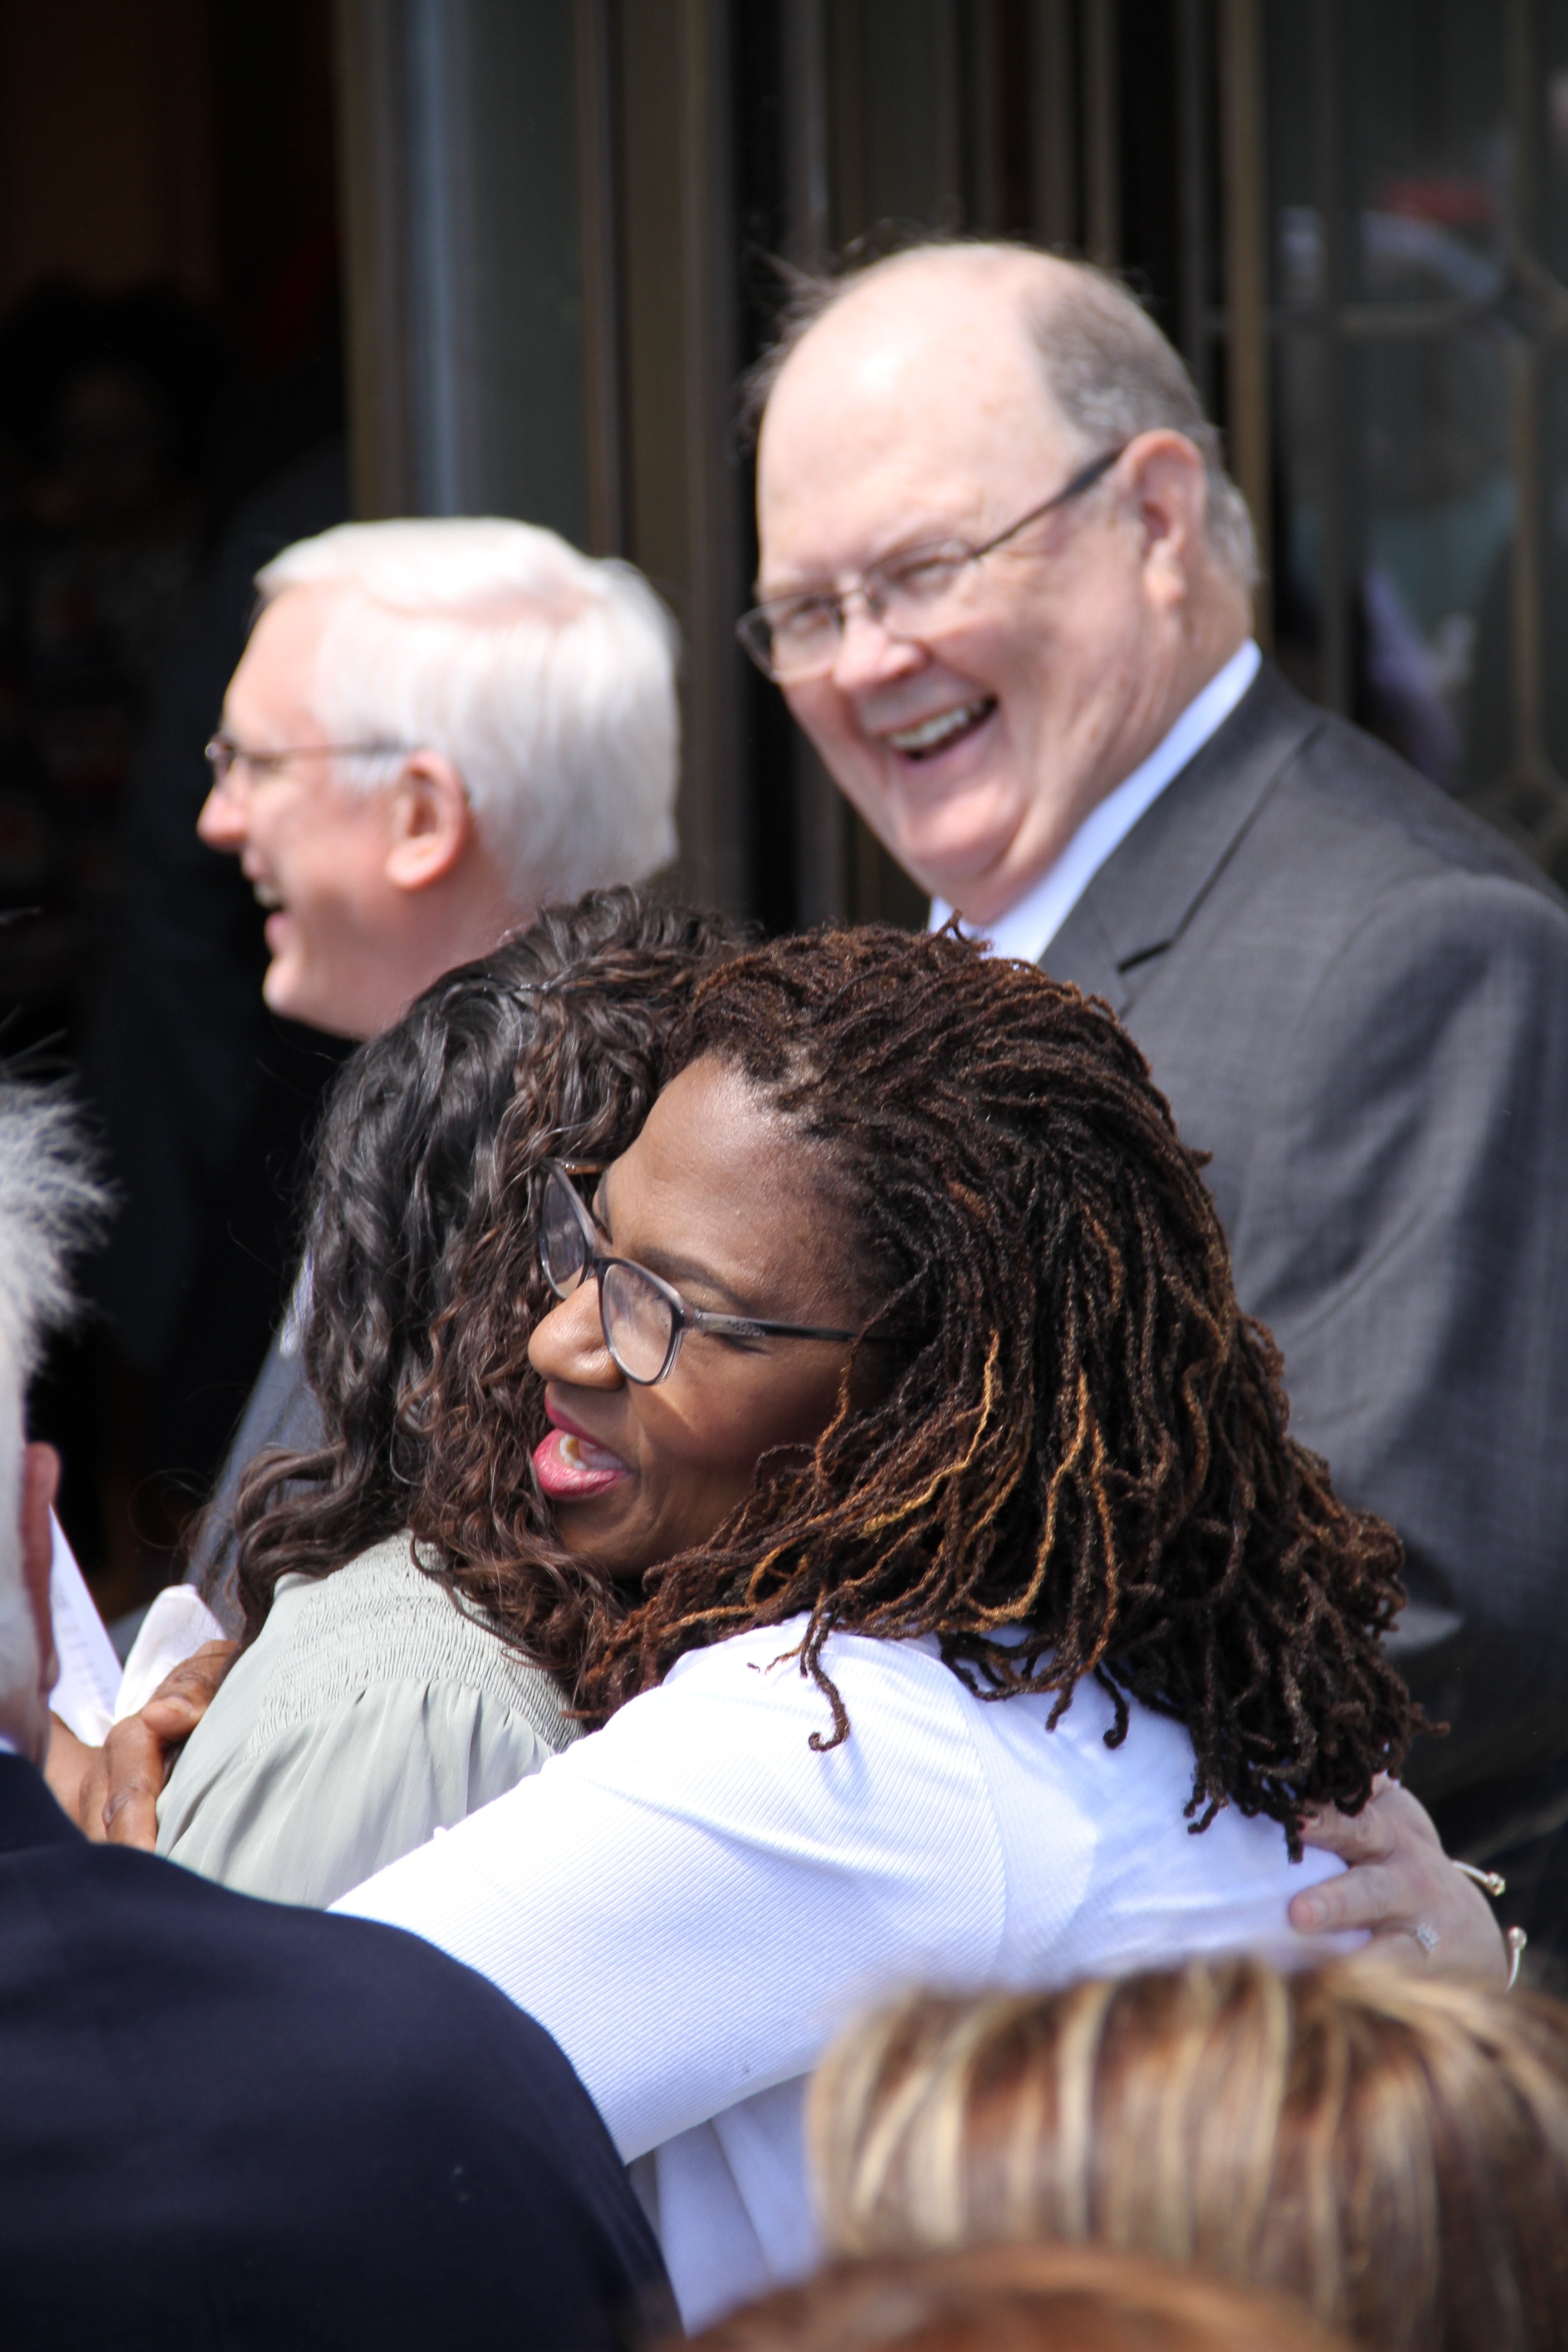 Attendees of the Memphis Tennessee Temple rededication greet one another following the rededication ceremony on May 5, 2019.